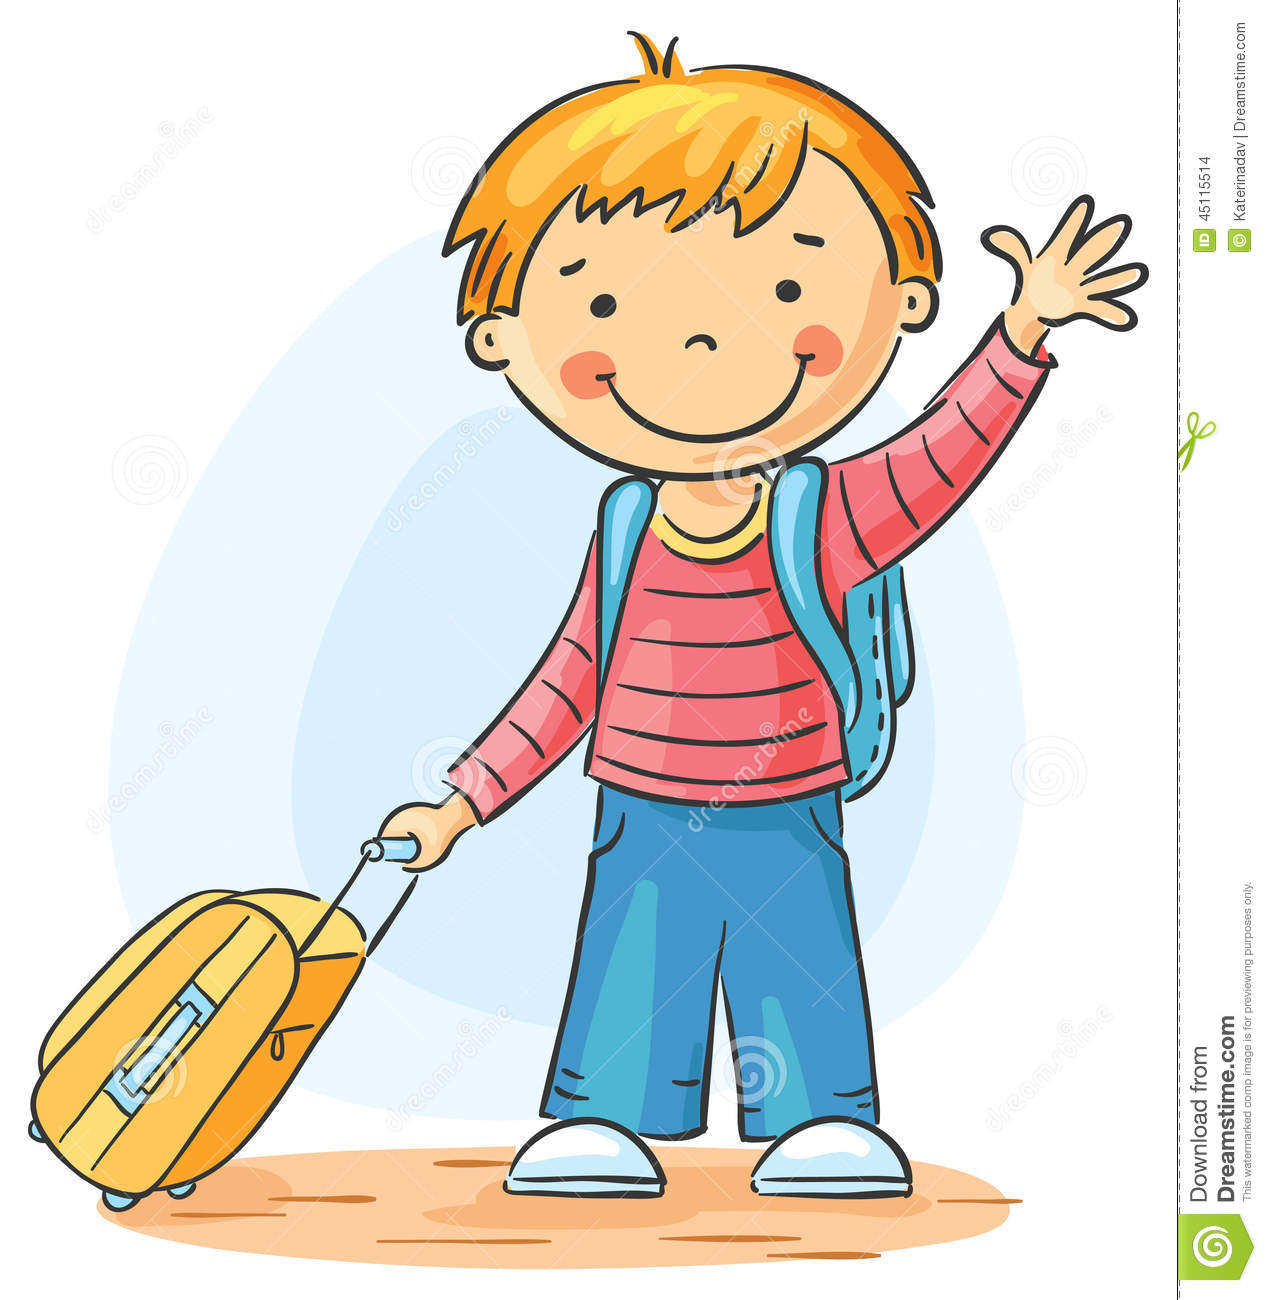 hight resolution of 1267x1300 good bye clip art many interesting cliparts